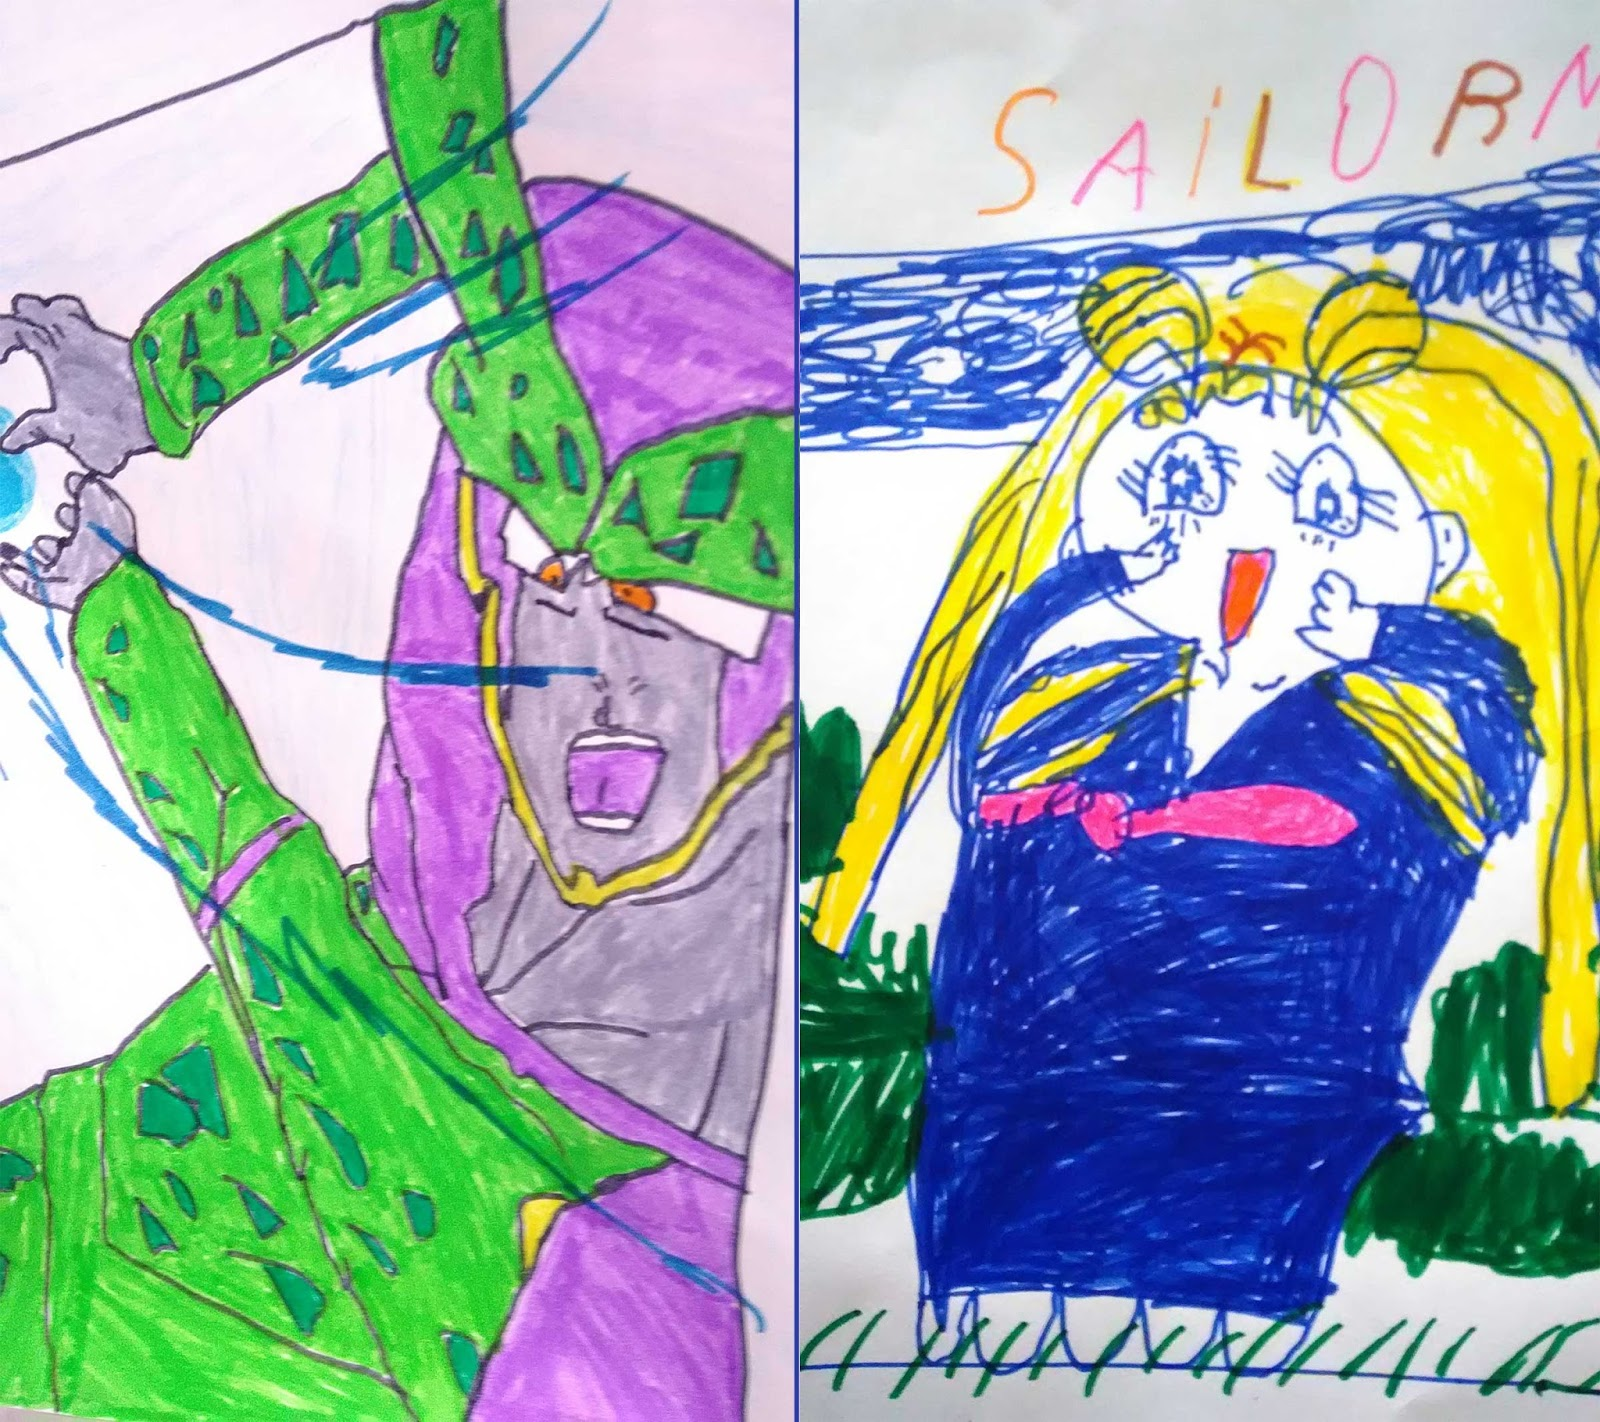 dessins enfants mang sailor moon et cell dbz